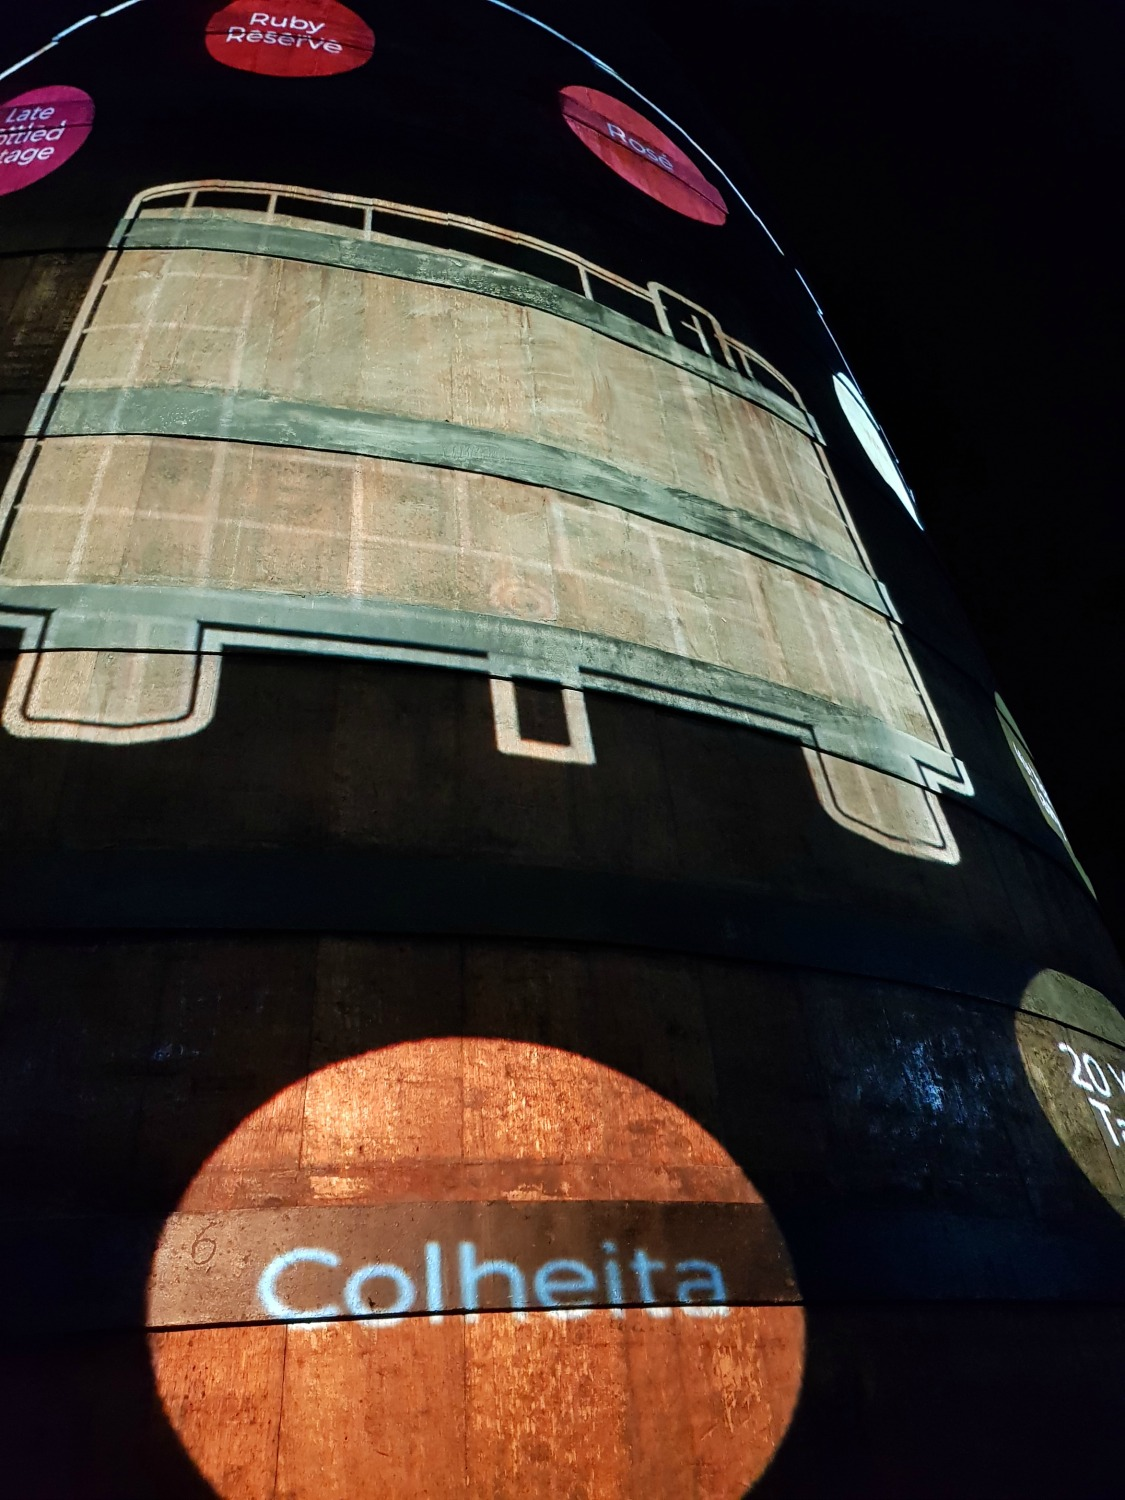 A display shone onto one of the huge port barrels as part of the tour of the cellar at Caves Calem in Vila Nova de Gaia, across the river from Porto - my Porto travel tips and lessons for visiting with kids